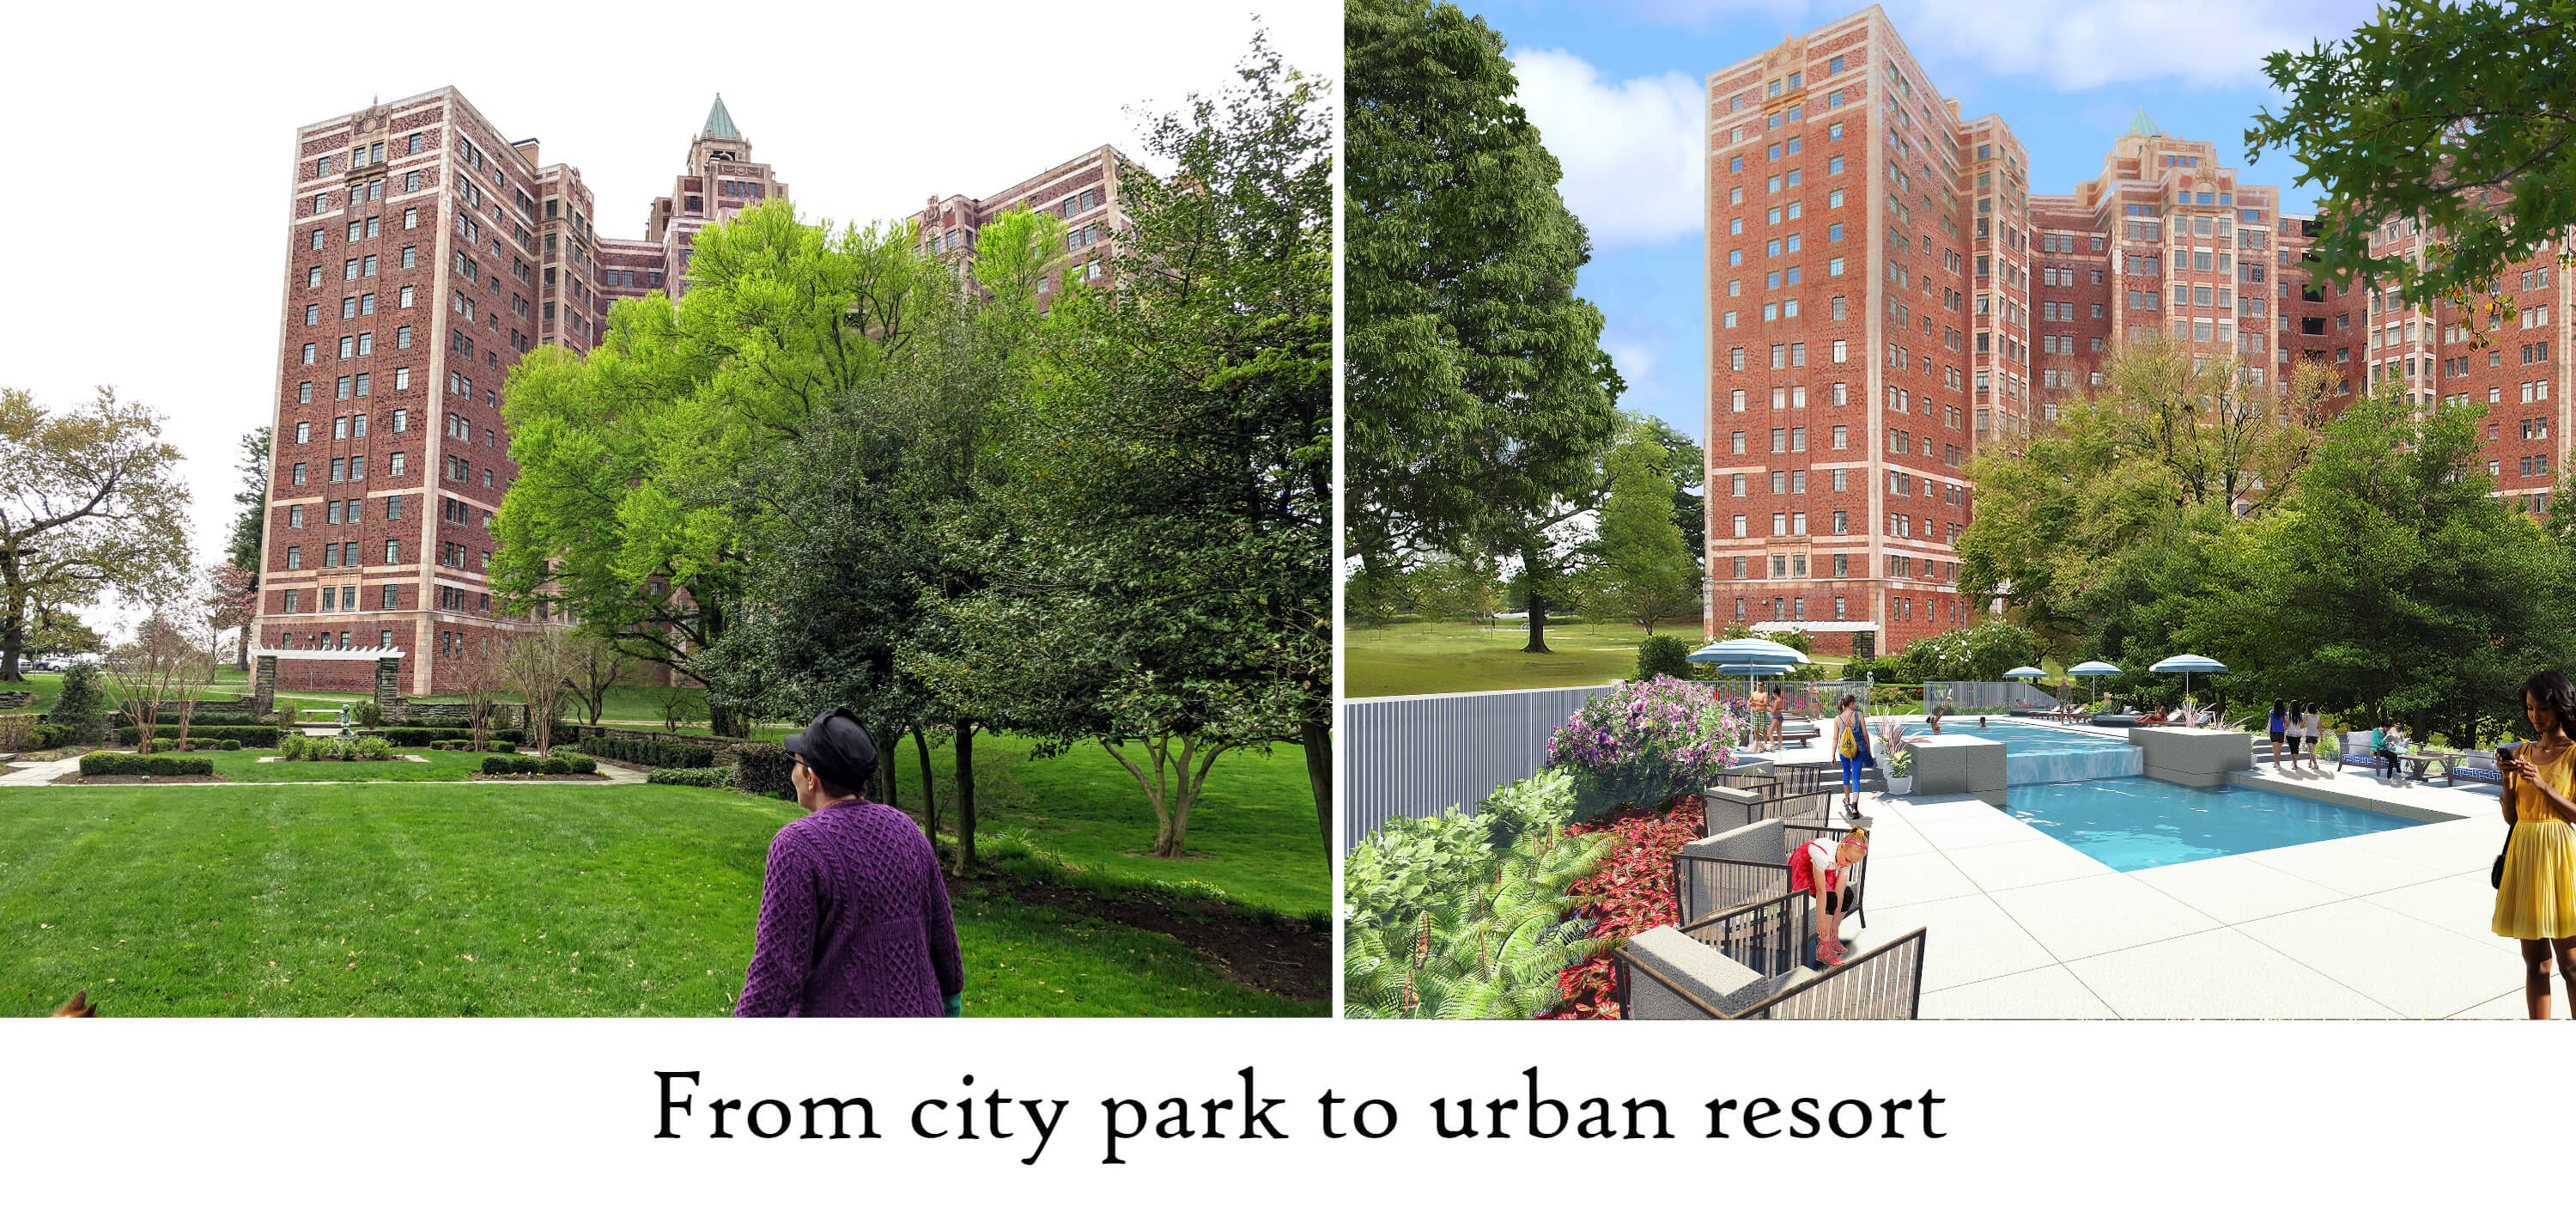 Eastfallslocal city park to urban resort collage text